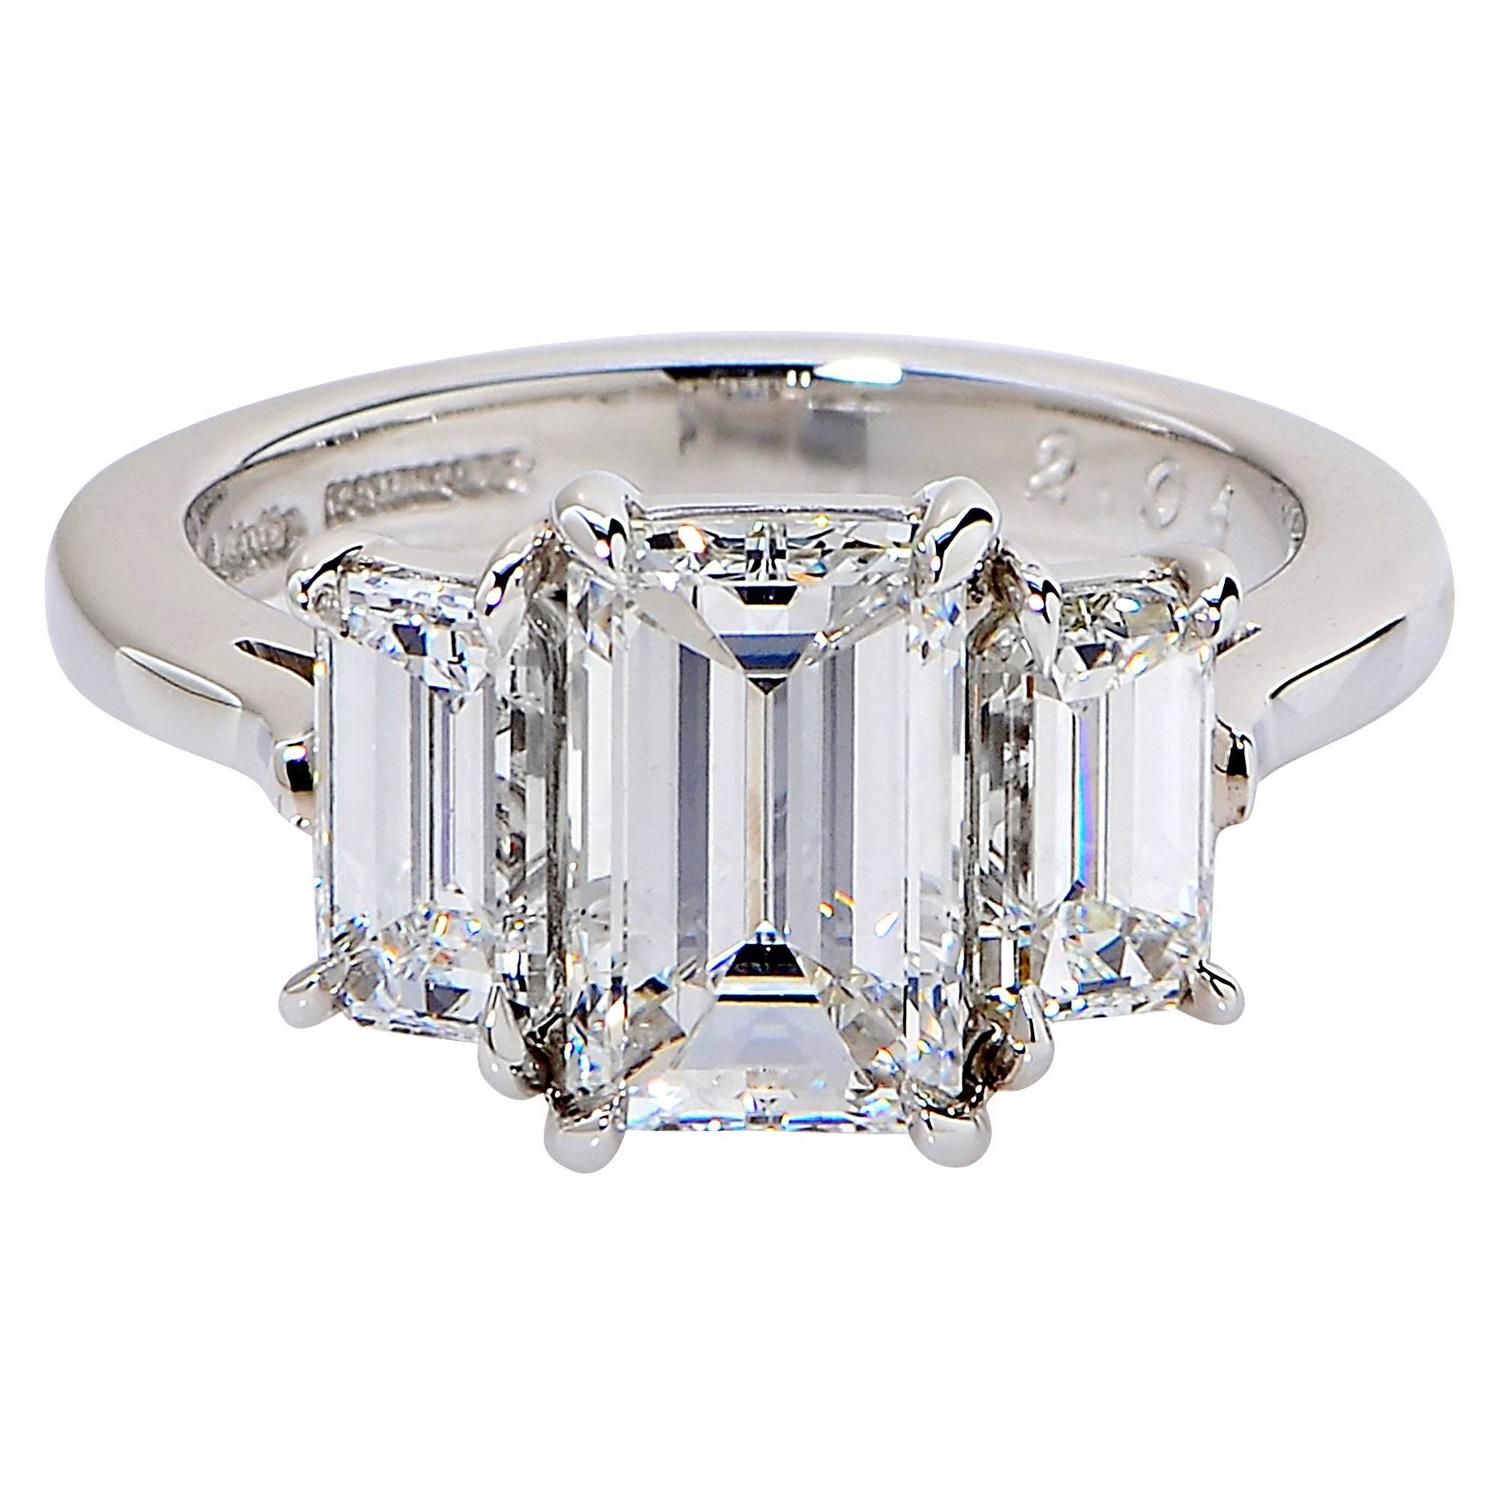 2 01 Carat GIA Cert Emerald Cut Diamond Platinum Engagement Ring at 1stdibs